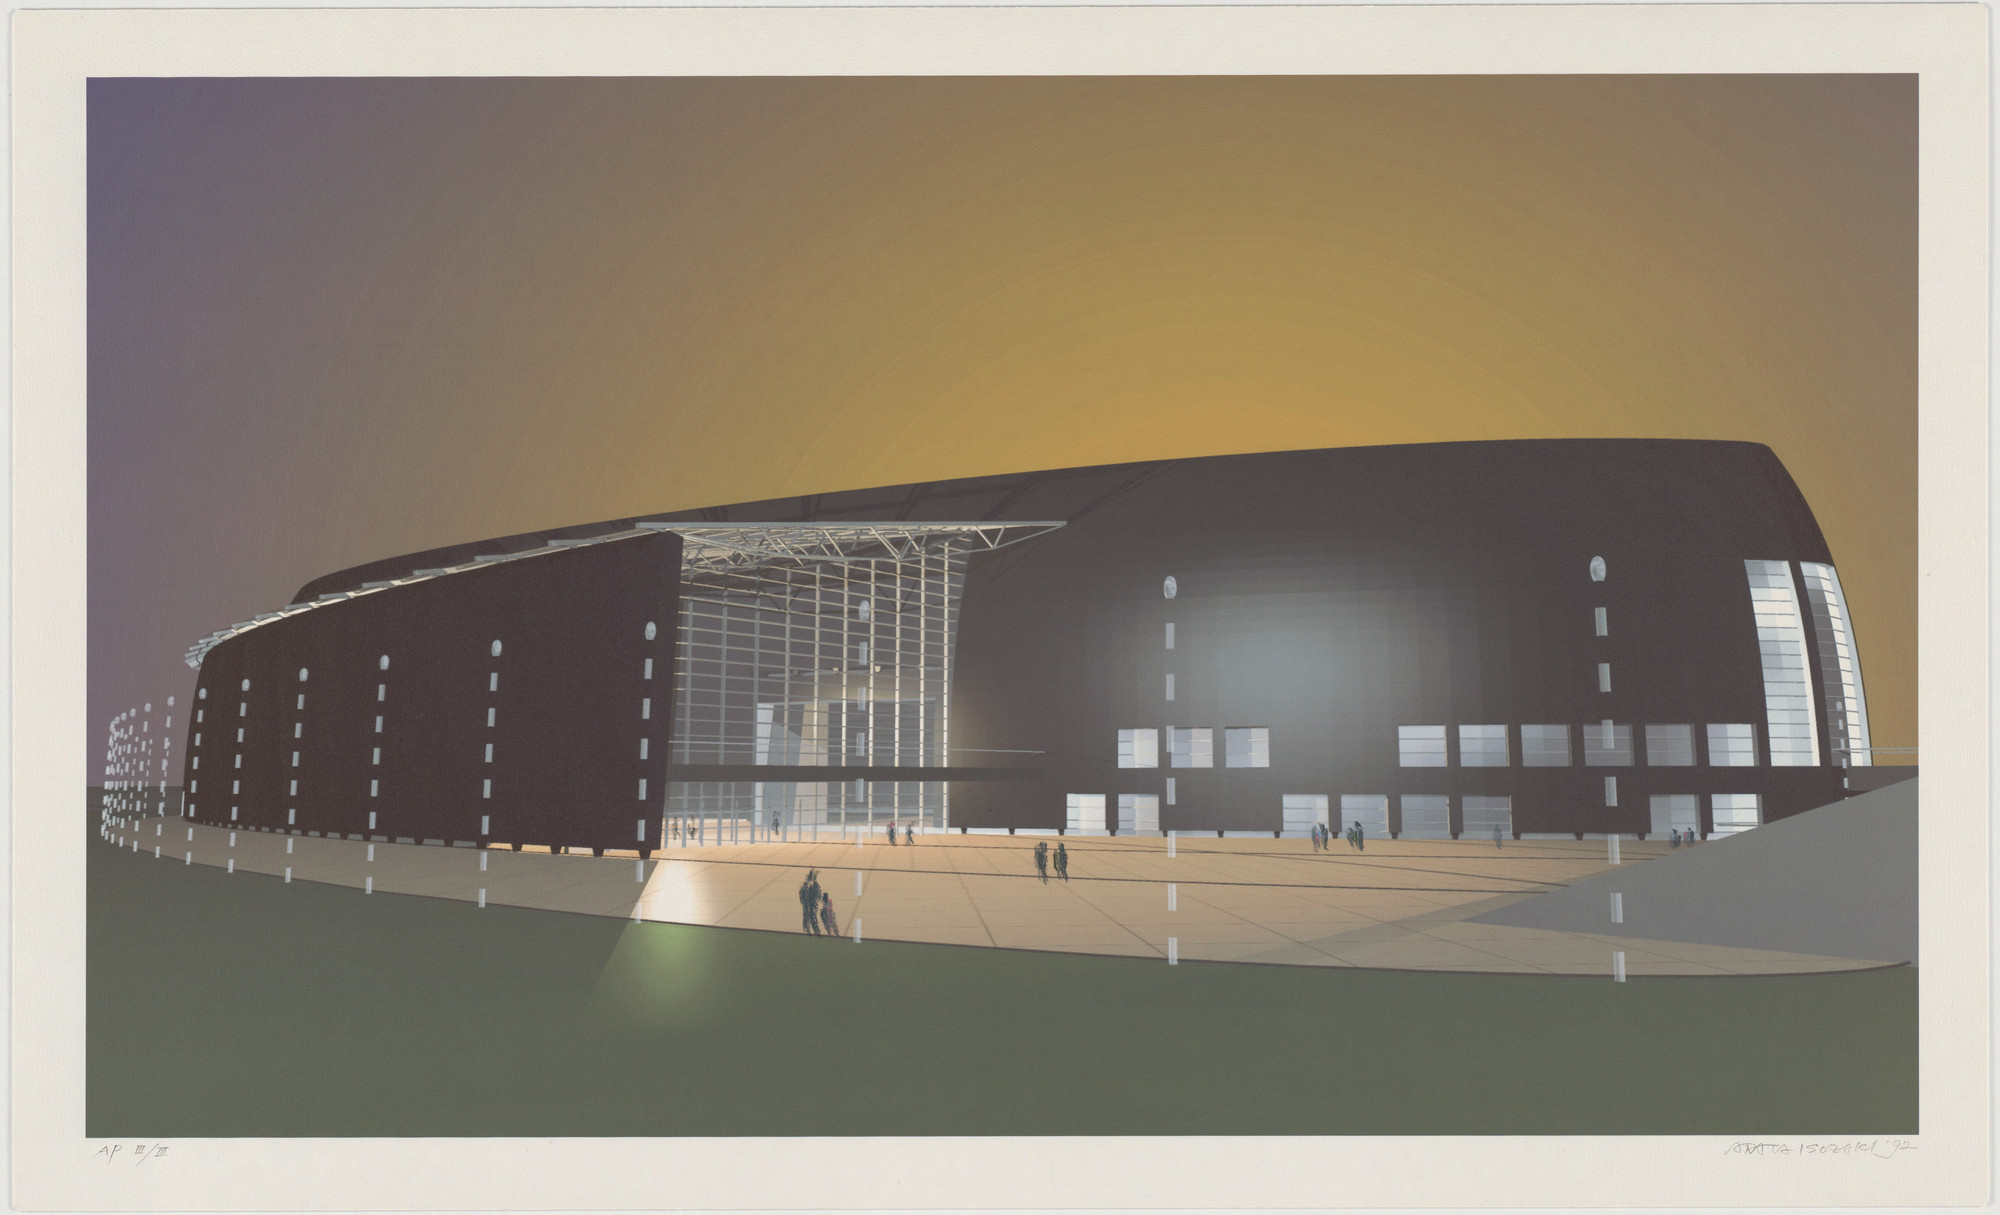 Arata Isozaki. Nara Convention Hall, Nara, Japan, Exterior perspective. 1992